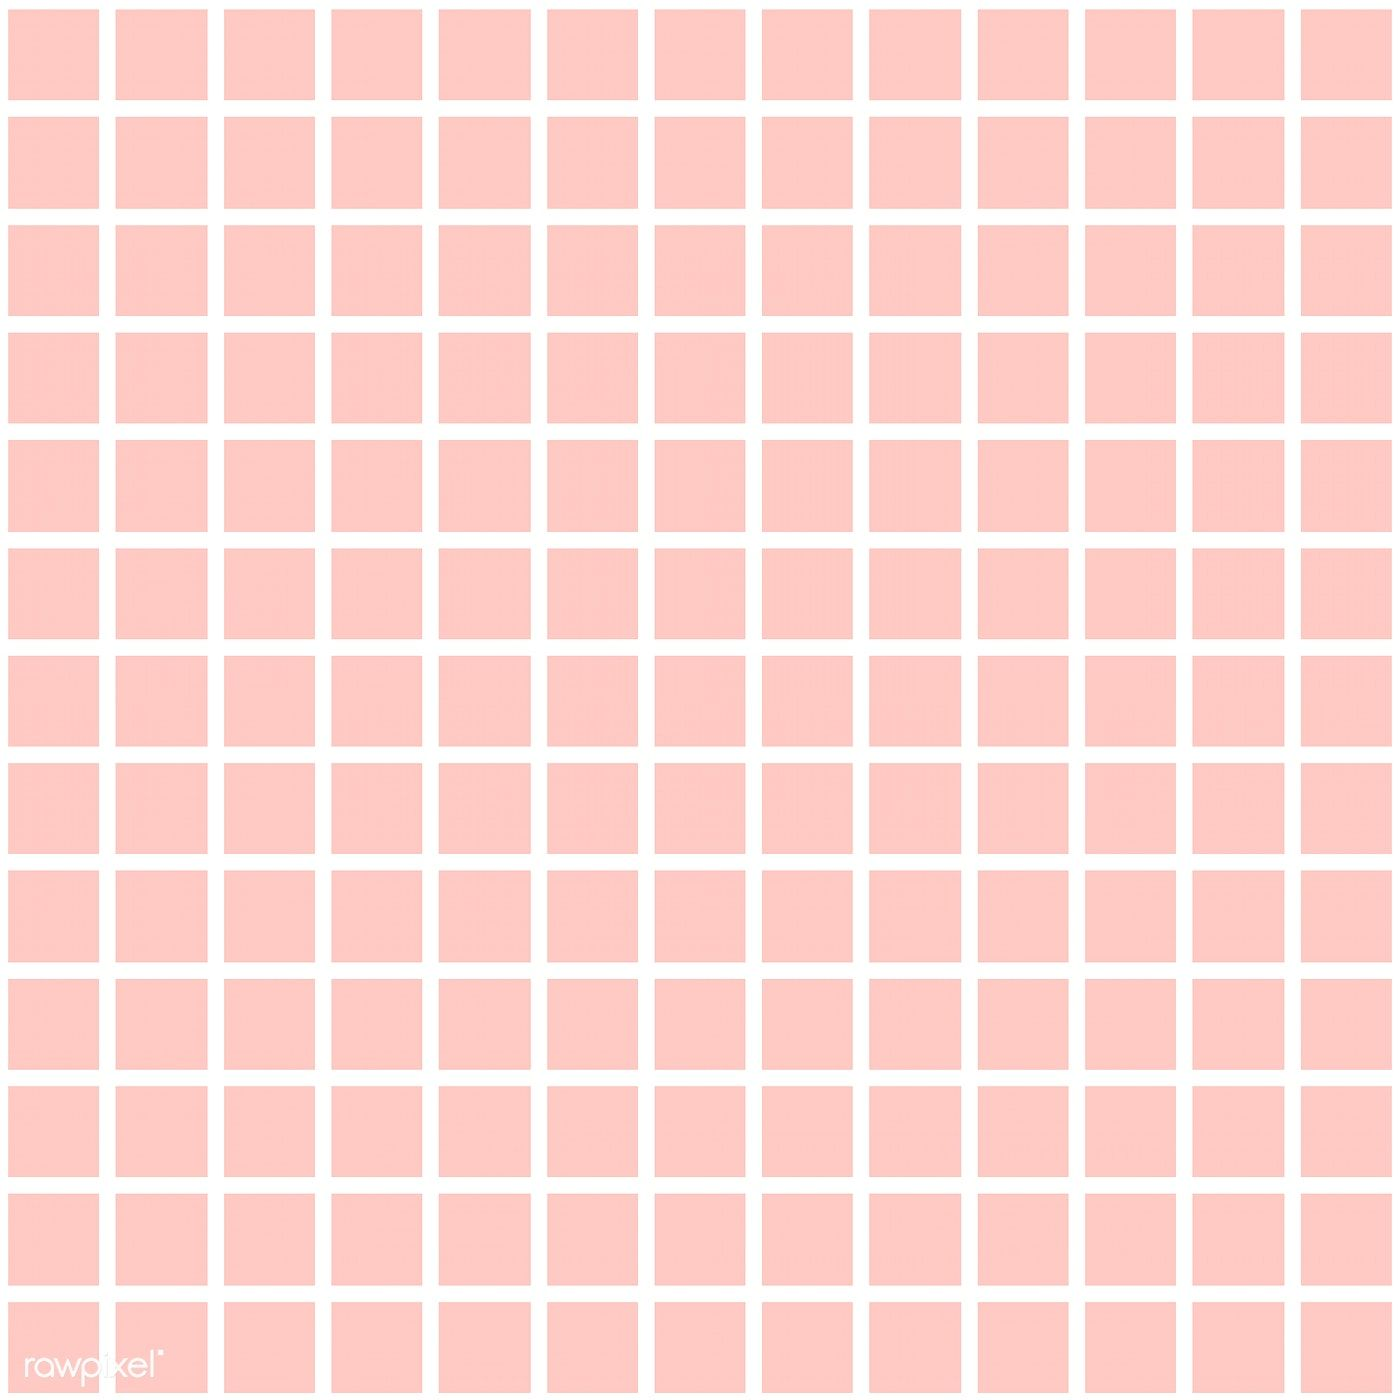 Pastel Pink Seamless Grid Pattern Vector Free Image By Rawpixel Com Filmful Pastel Pink Plain Pink Background Vector Free Aesthetic light pink grid wallpaper